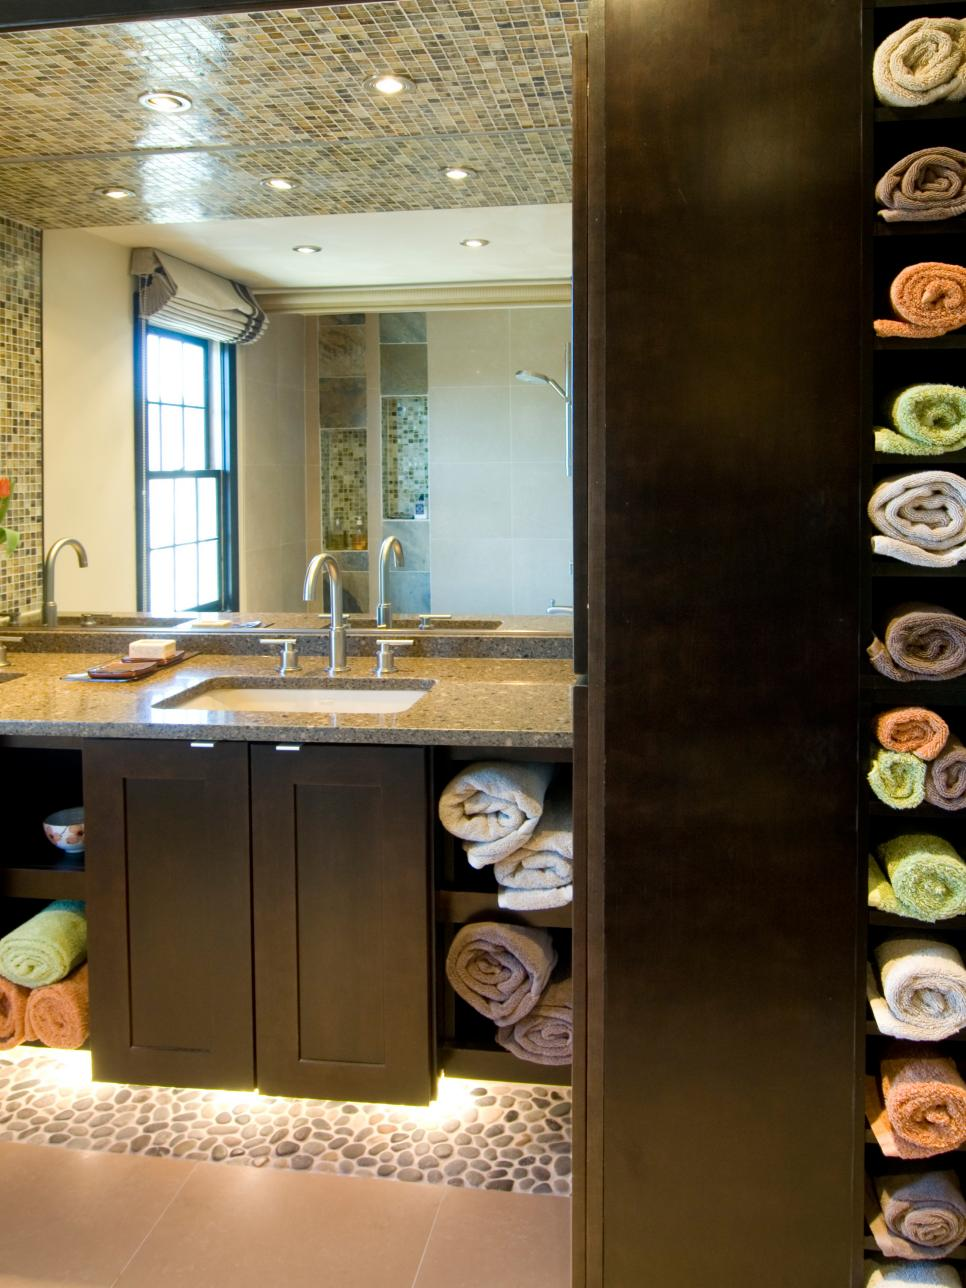 Clever Bathroom Storage Ideas HGTV - Cute bath towel sets for small bathroom ideas